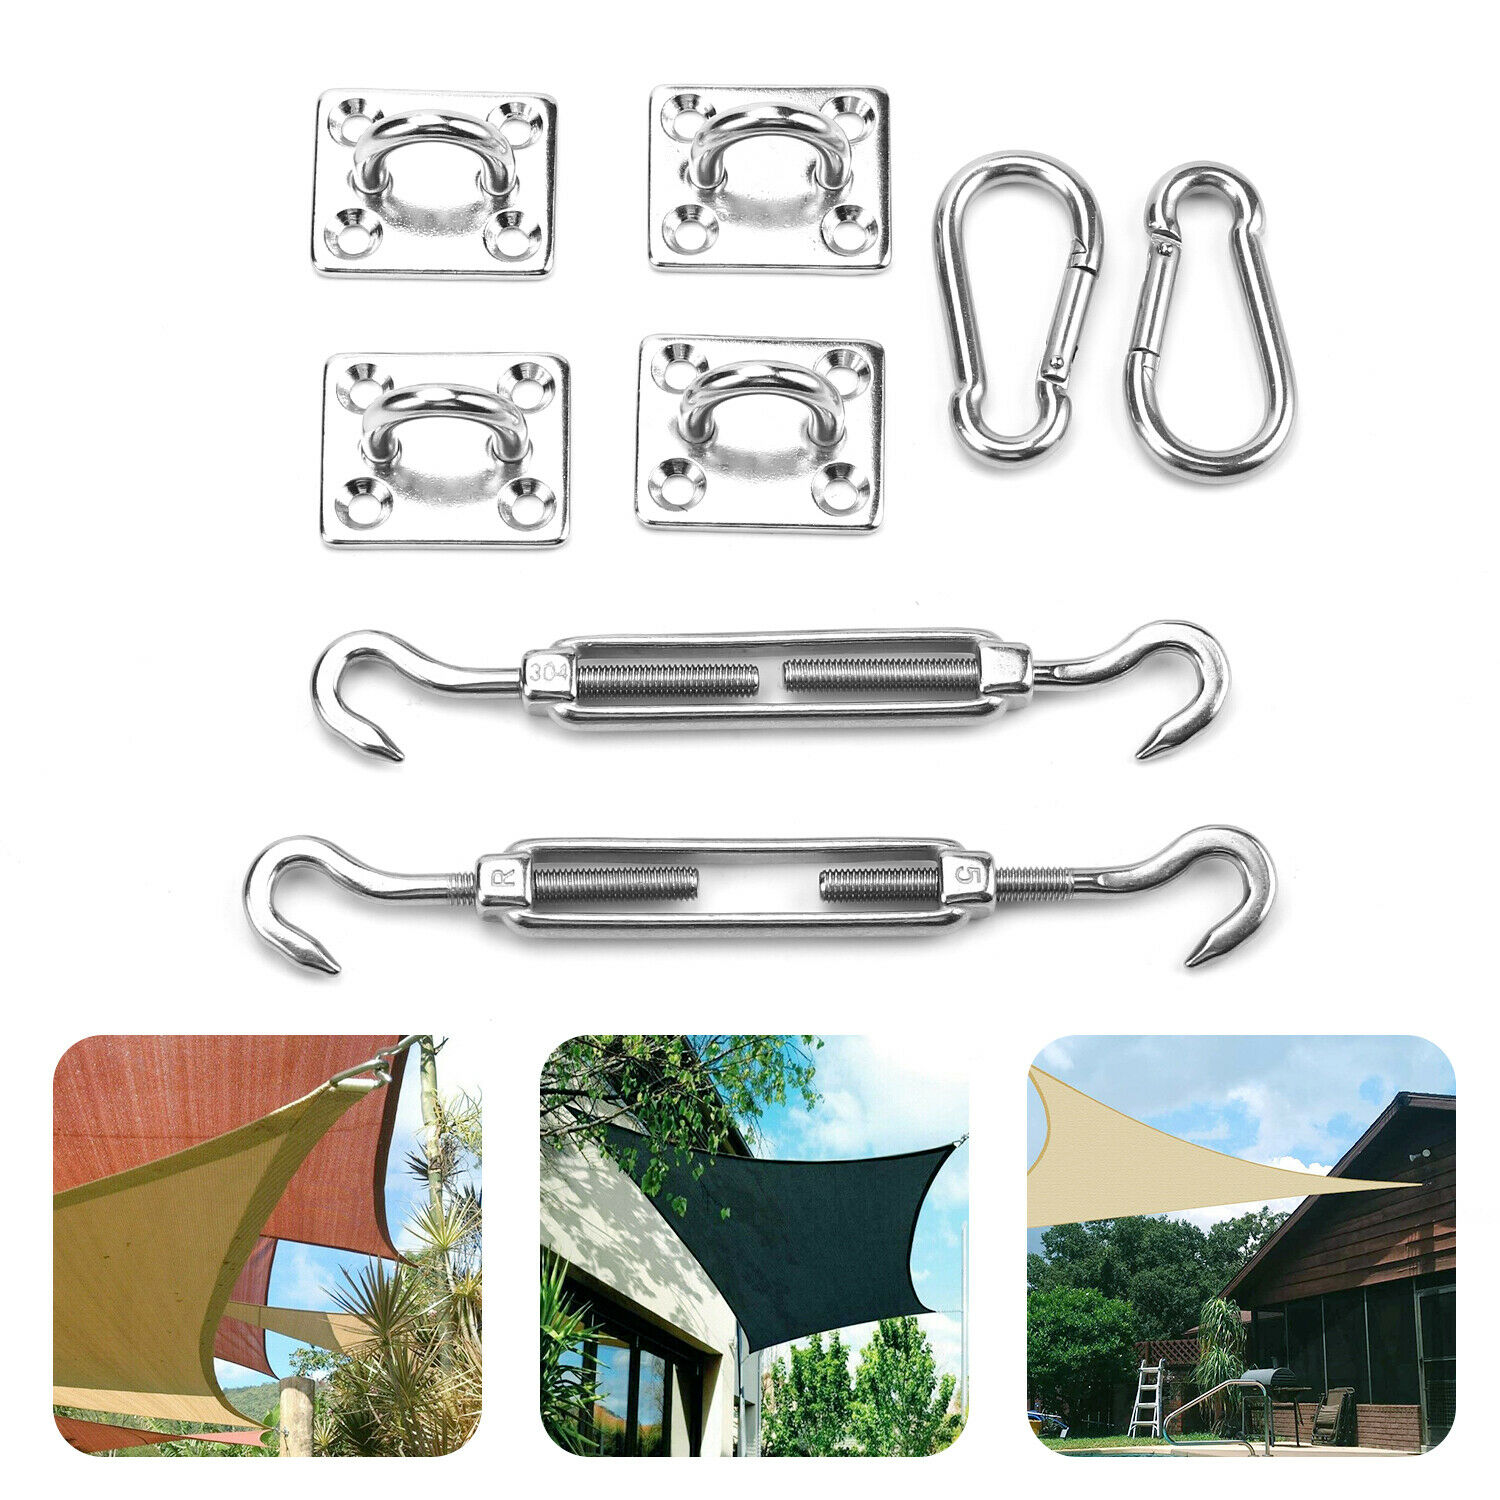 Shade Sail Hardware Kit for Rectangle and Square 6 Inches 304 Marine Grade Stainless Steel Sun Shade Sail Installation for Patio Lawn Garden 24 Pcs